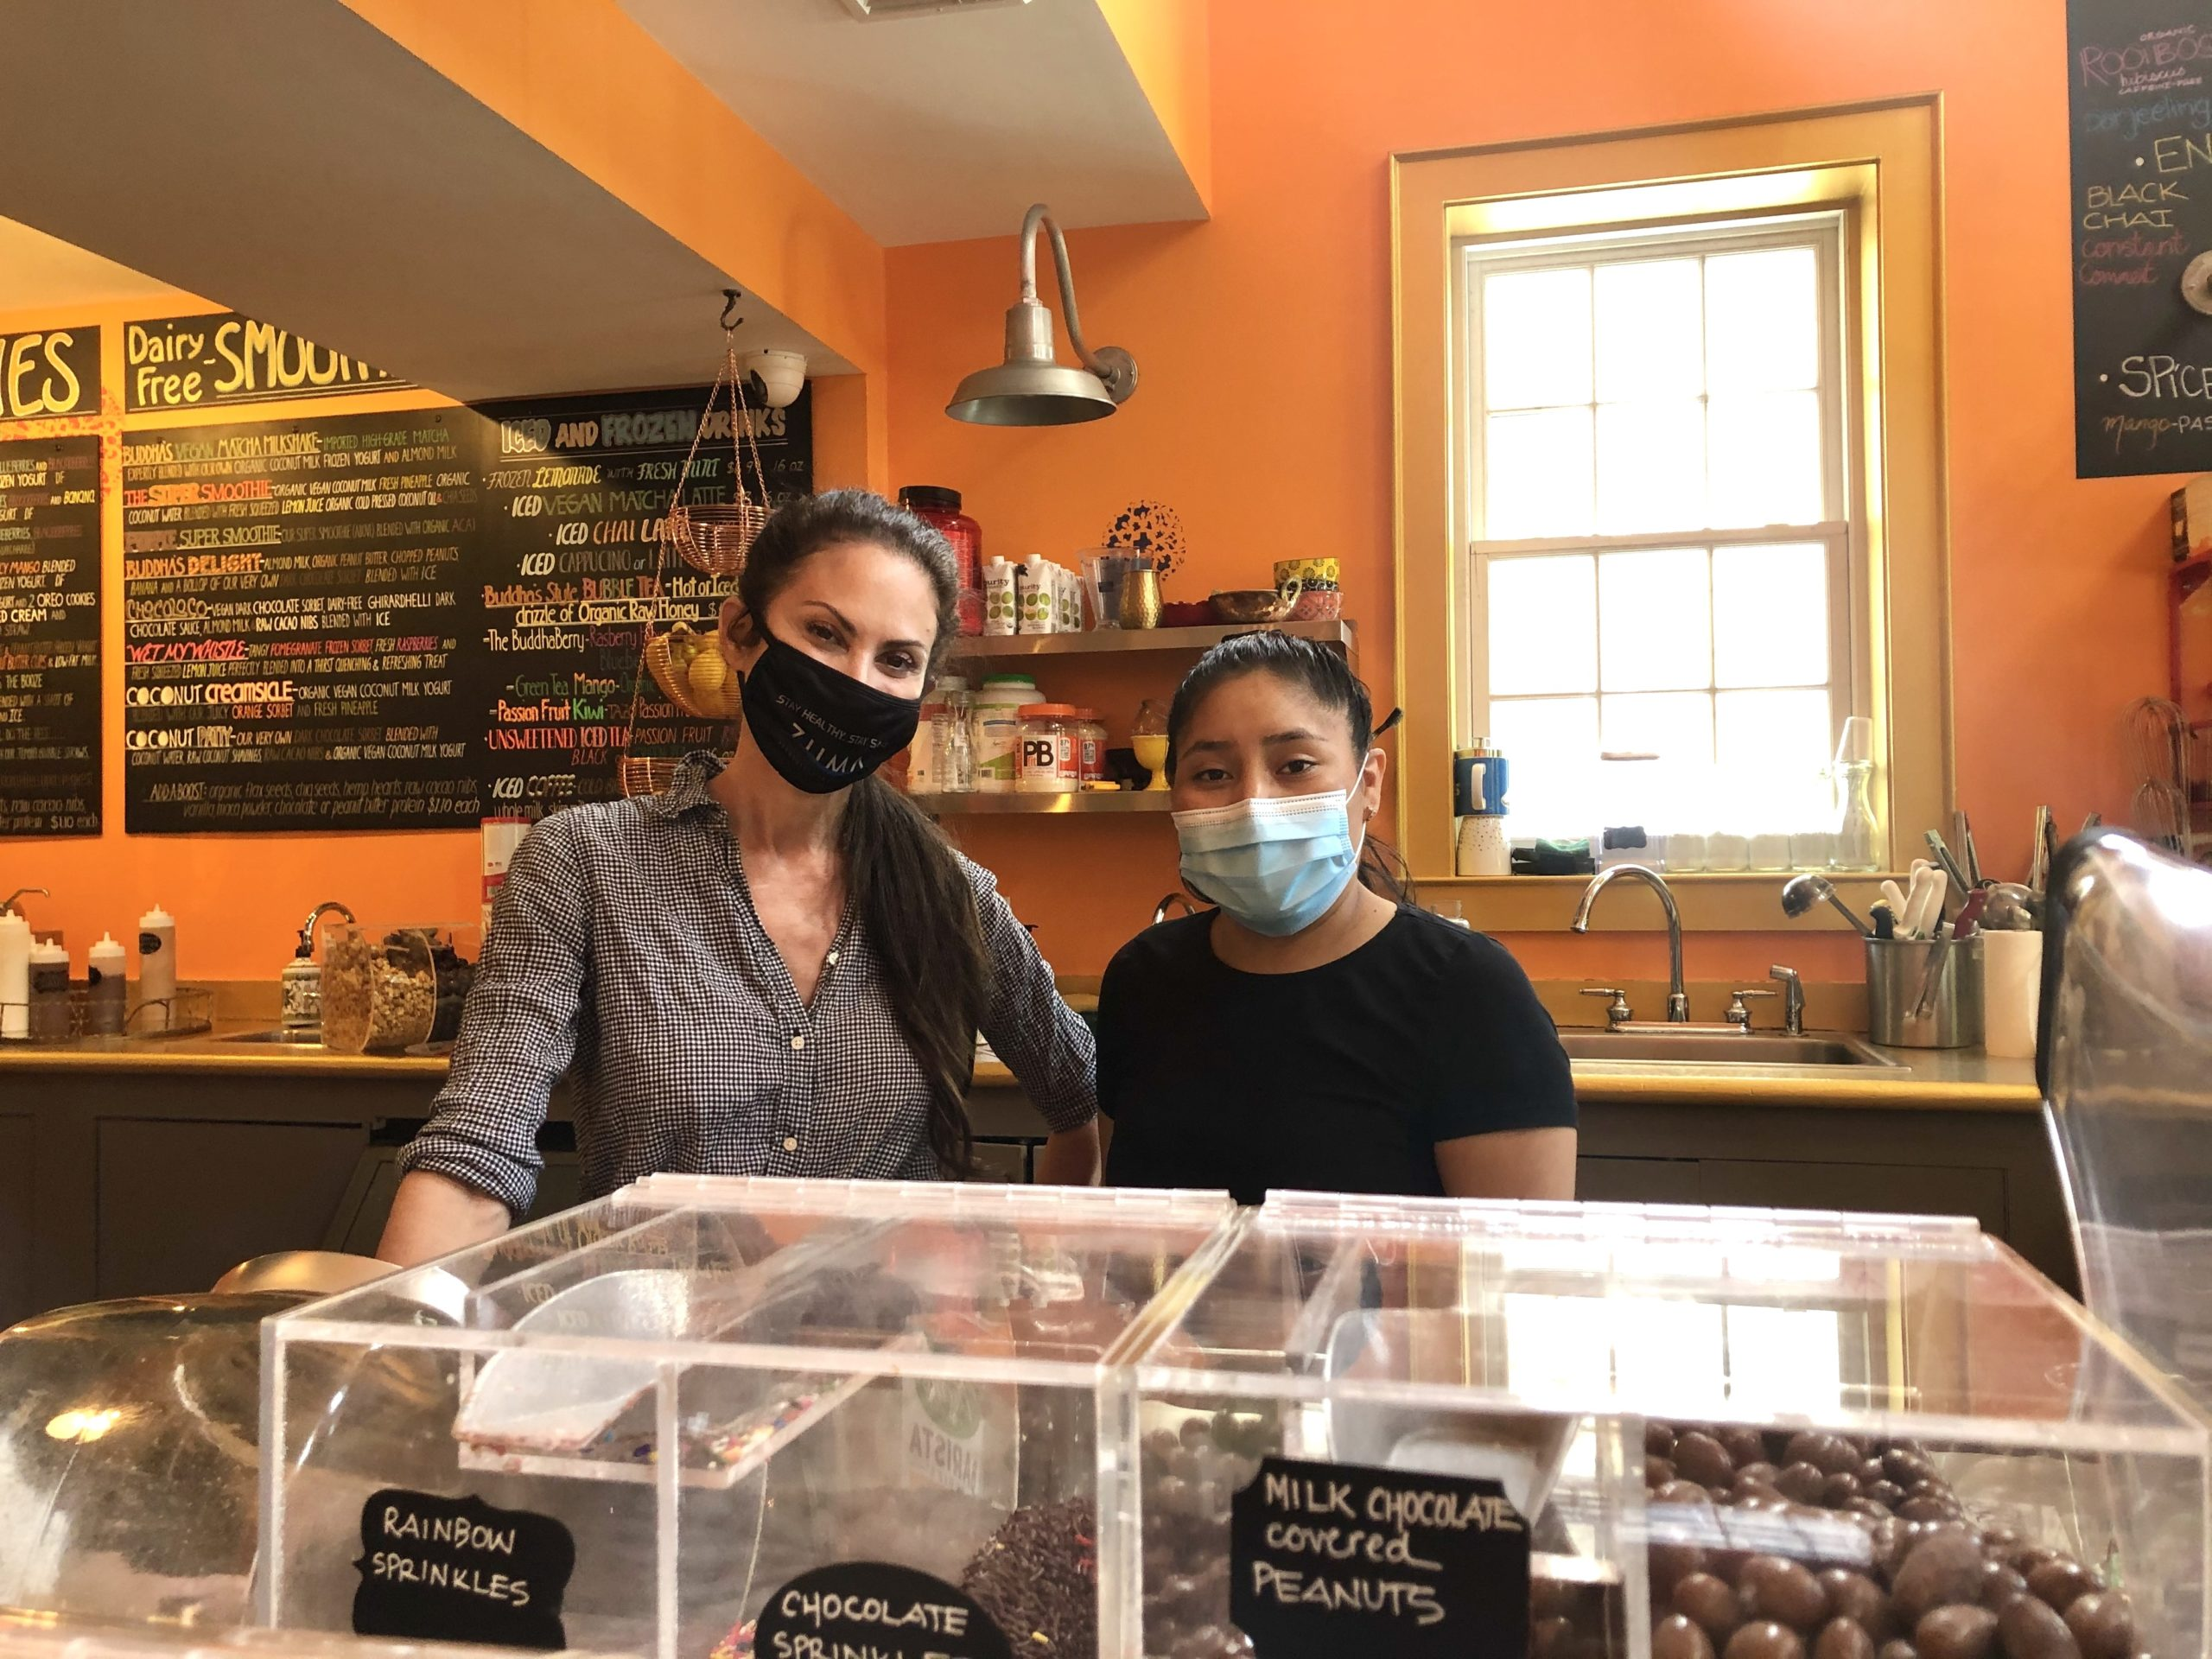 At Buddhaberry in Sag Harbor, owner Nancy Passaretti was able to hire college students both home and vacationing in the East End for the summer to fill a void left after President Donald Trump cut vital visa programs.